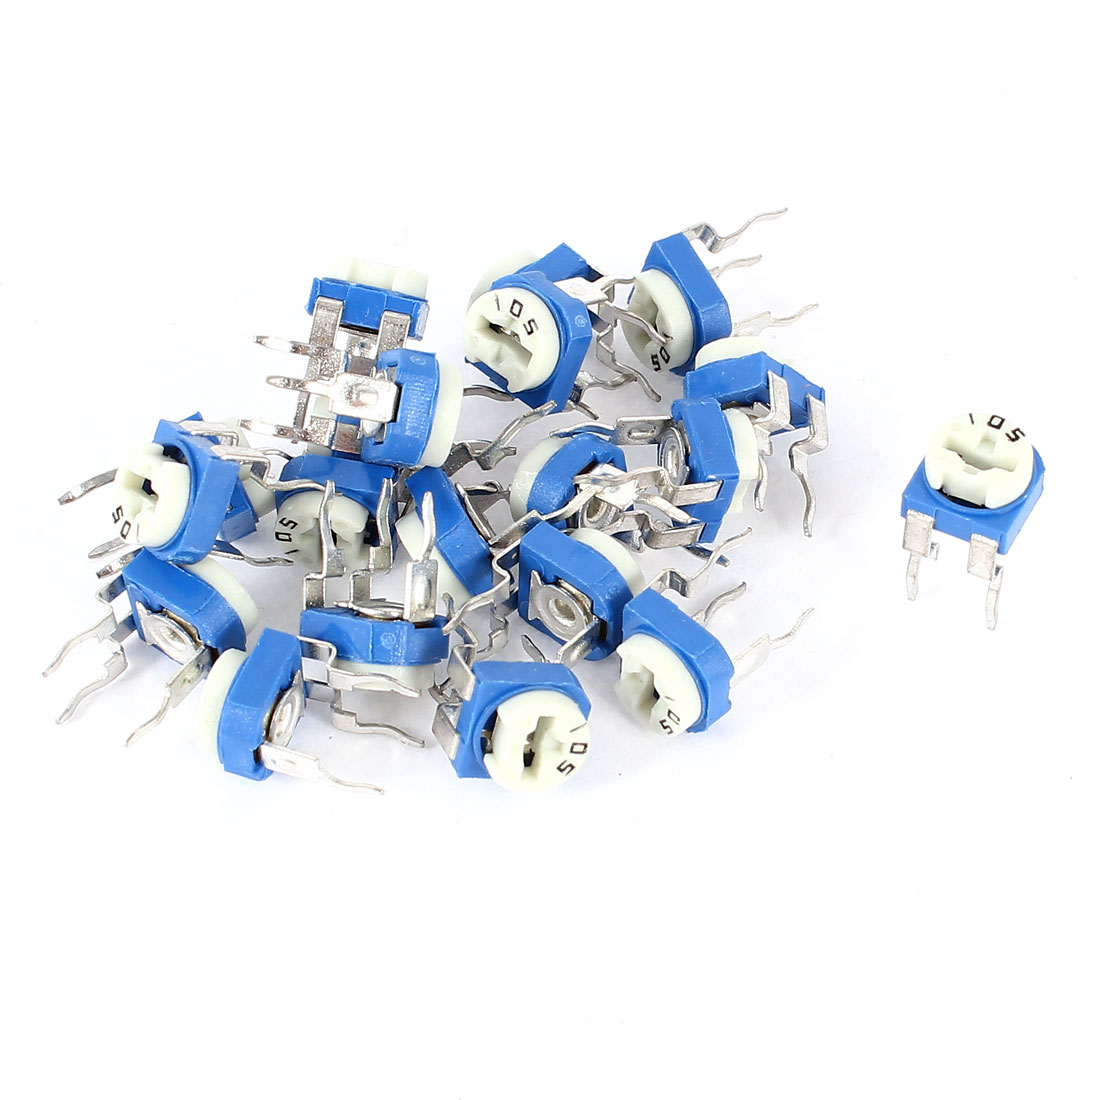 20pcs 1M Ohm PCB Mount Variable Resistor Horizontal Trimmer Potentiometers